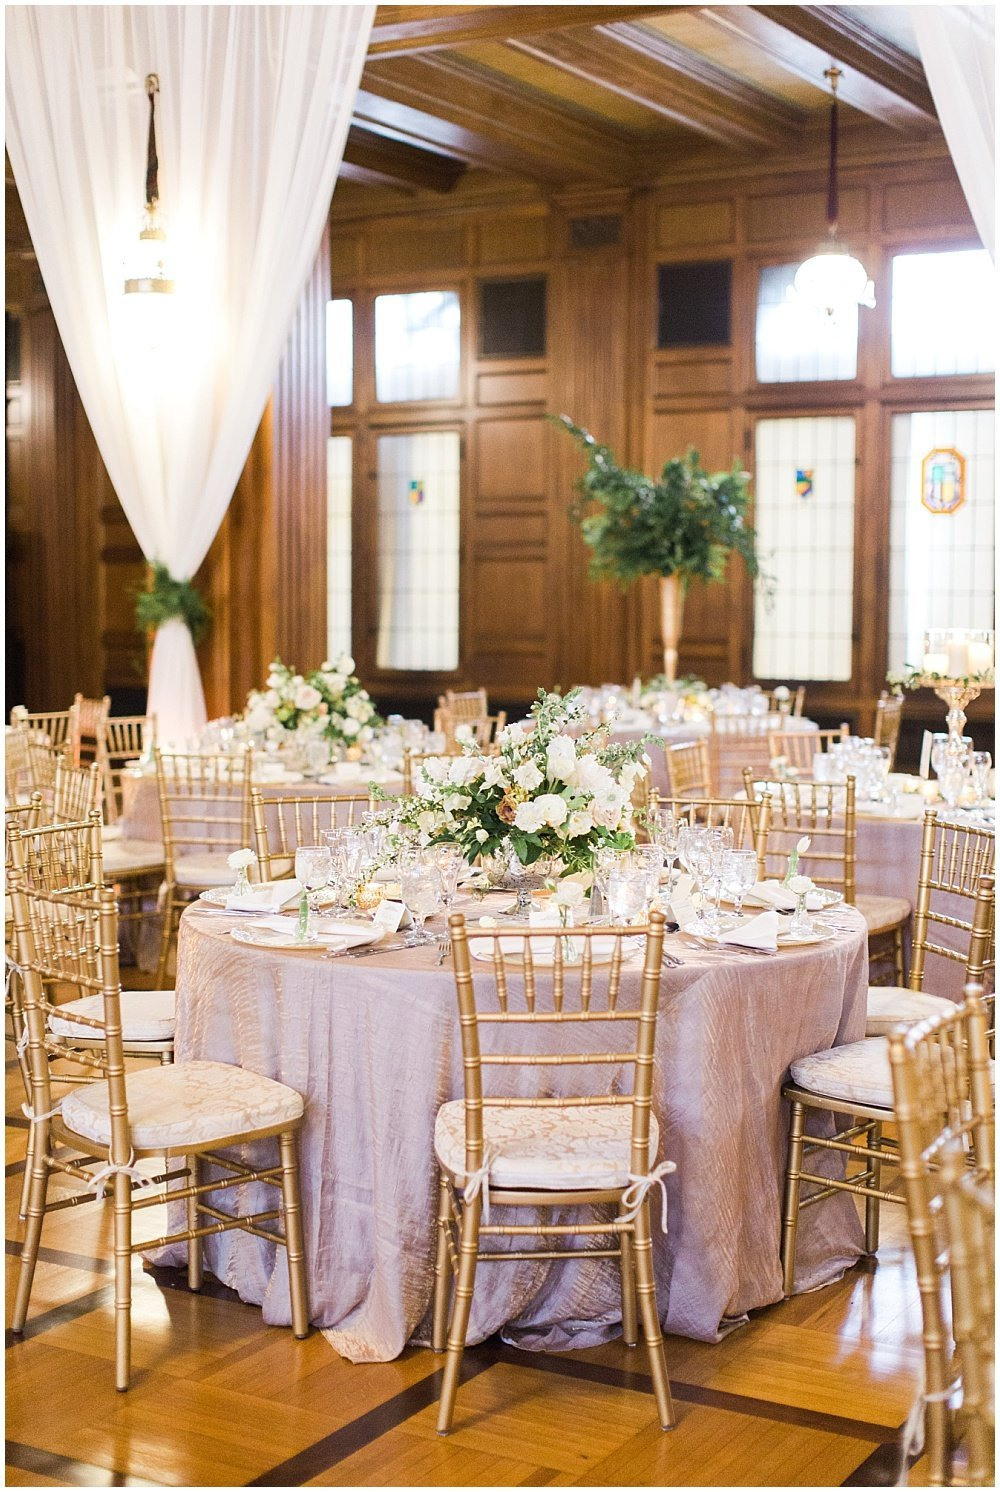 Spring-Scottish-Rite-Cathedral-Neutral-Gold-Ivory-Greenery-Floral-Indianapolis-Wedding-Ivan-Louise-Images-Jessica-Dum-Wedding-Coordination_photo_0015